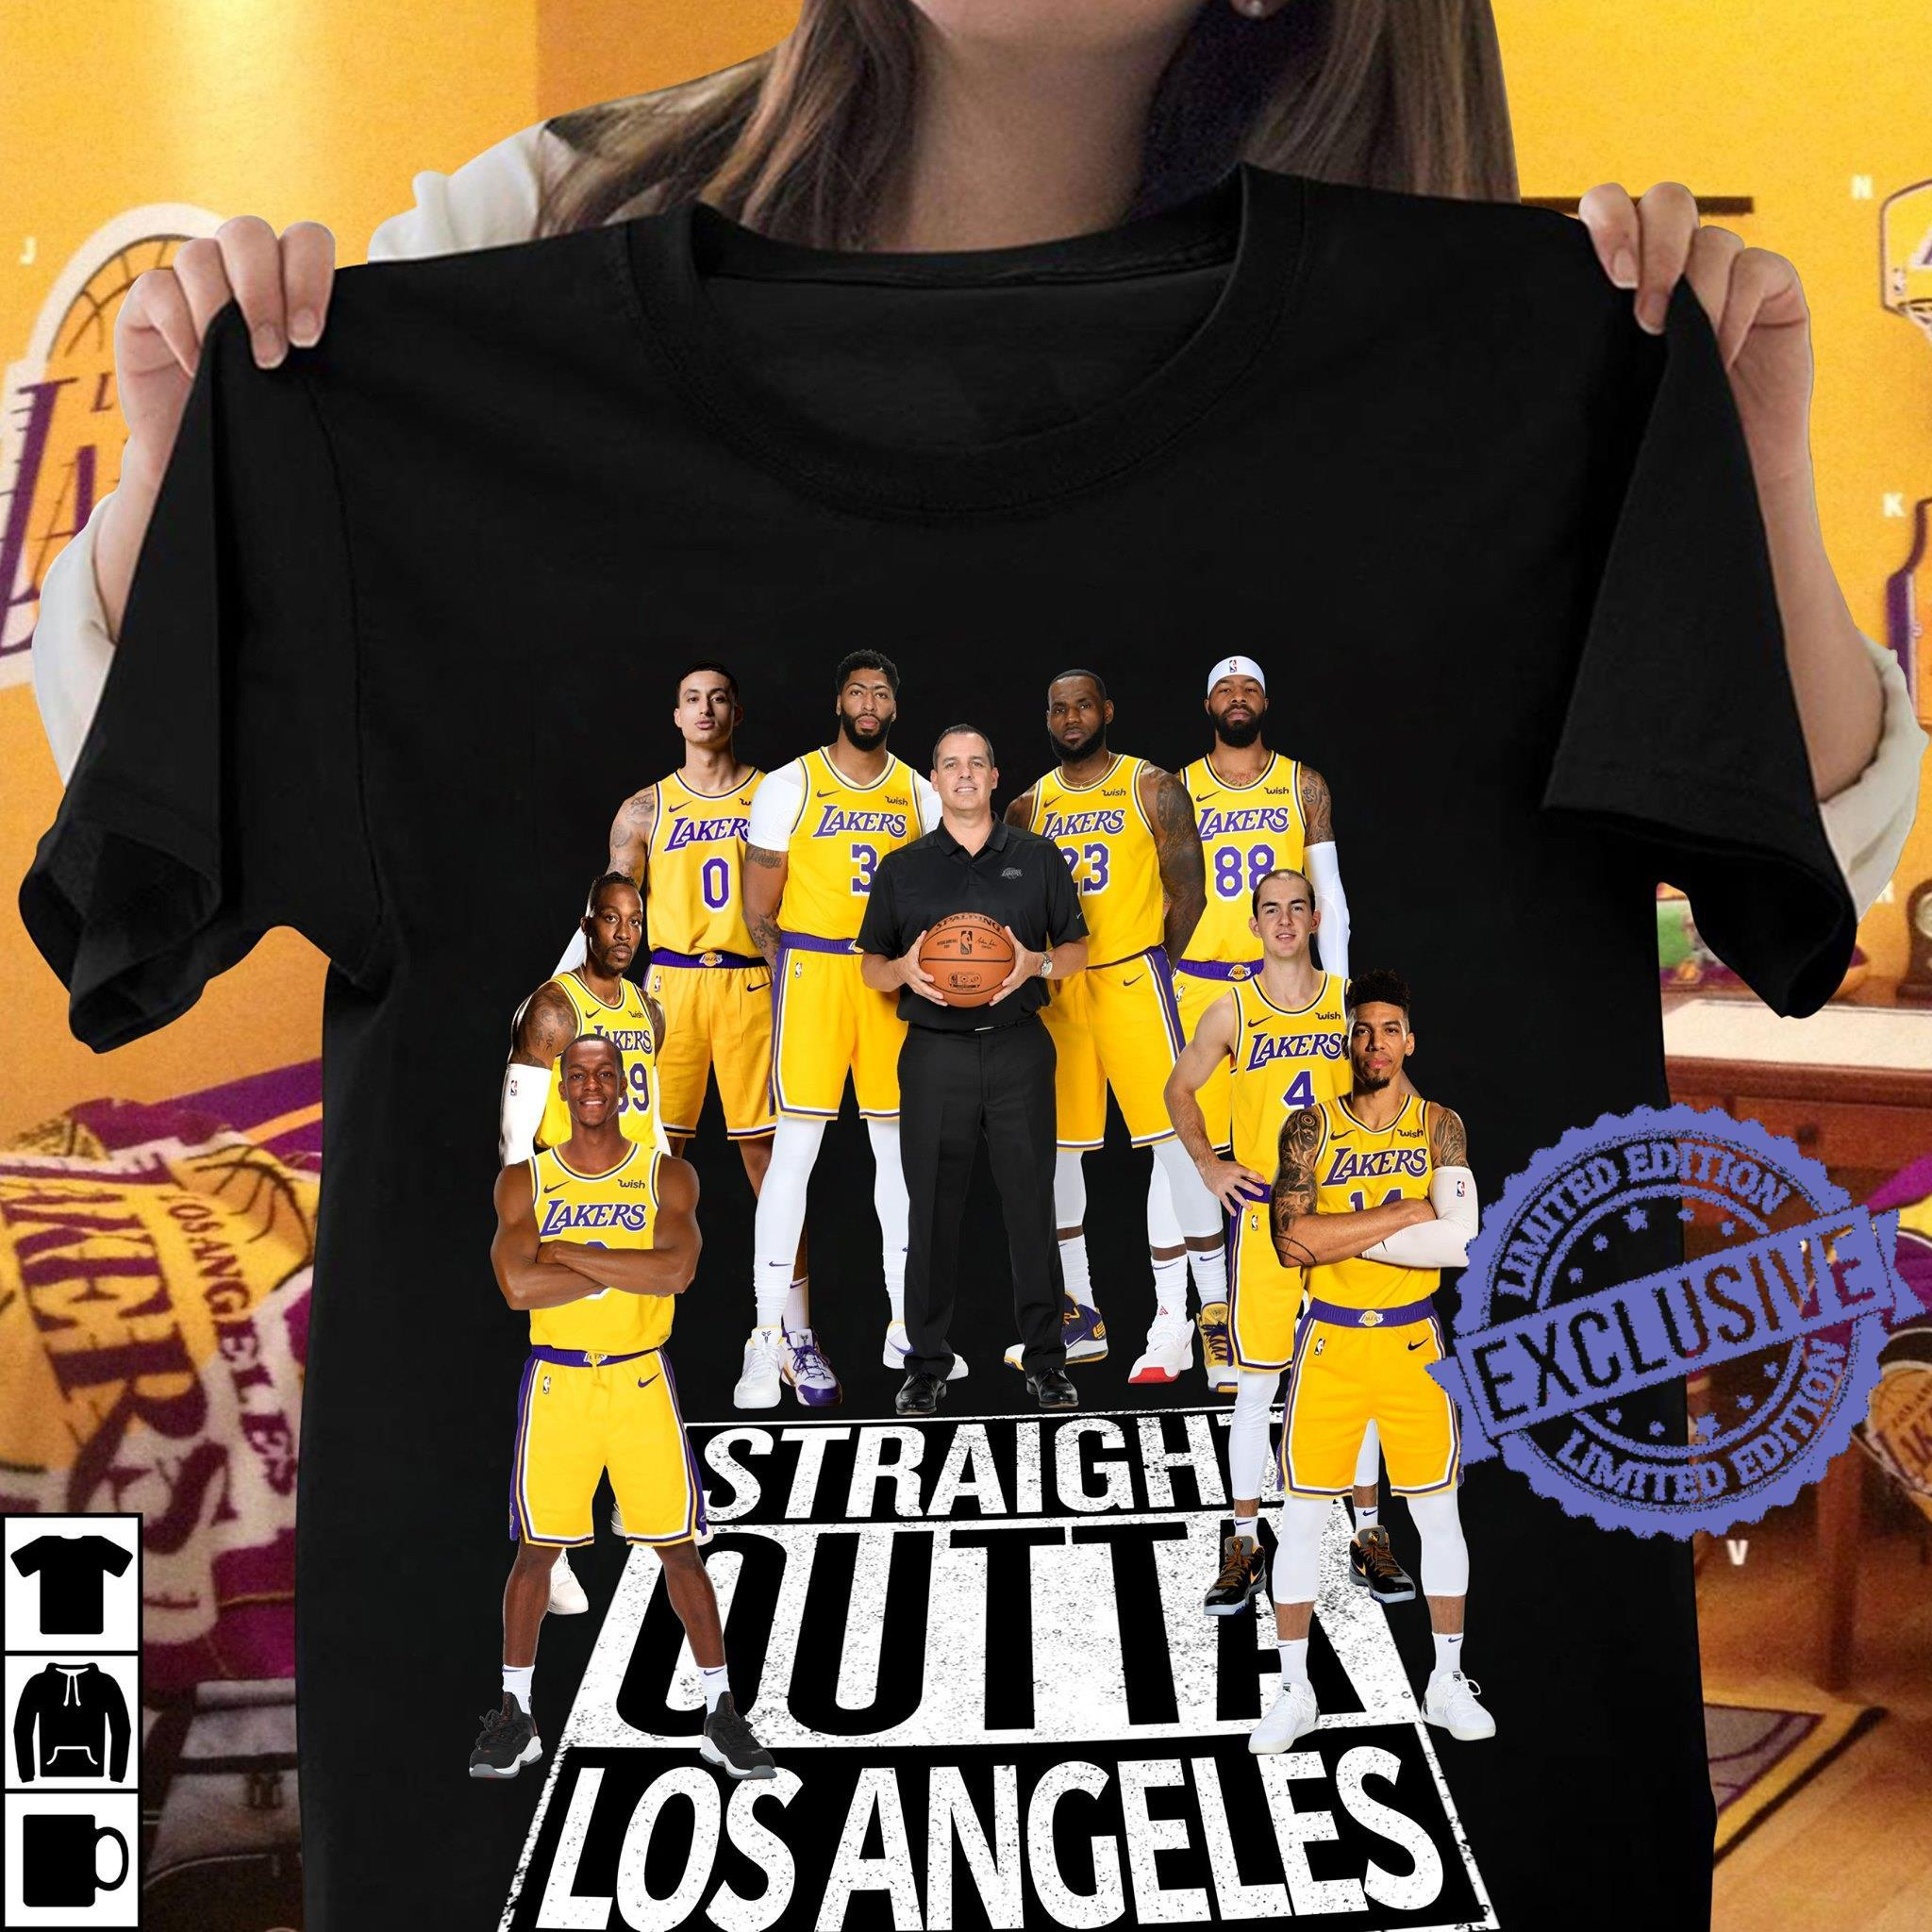 Straight outta los angeles shirt